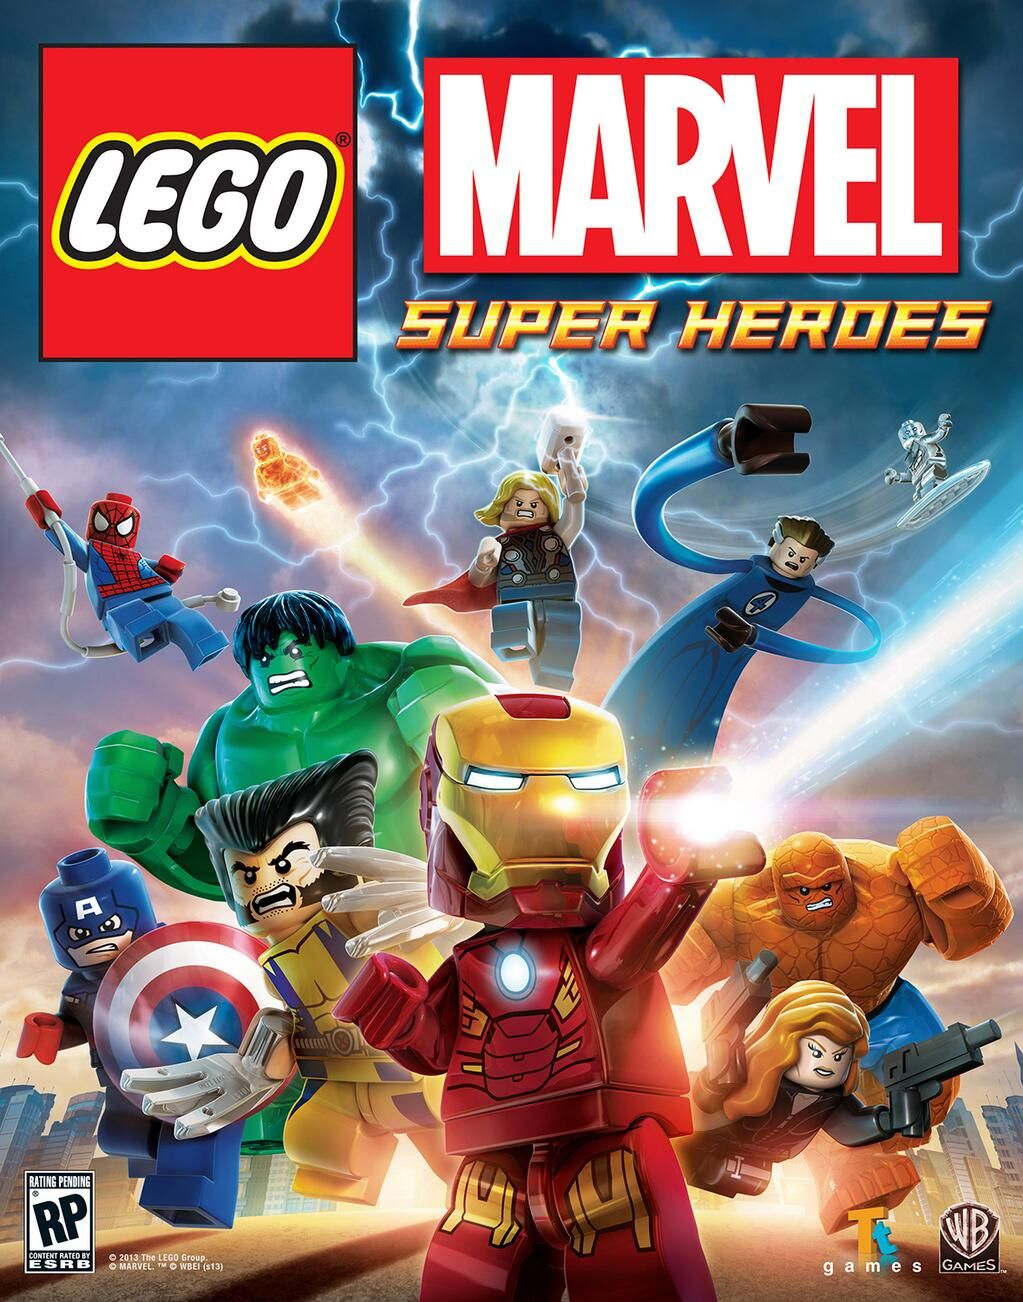 LEGO Marvel Super Heroes | Brickipedia | FANDOM powered by Wikia